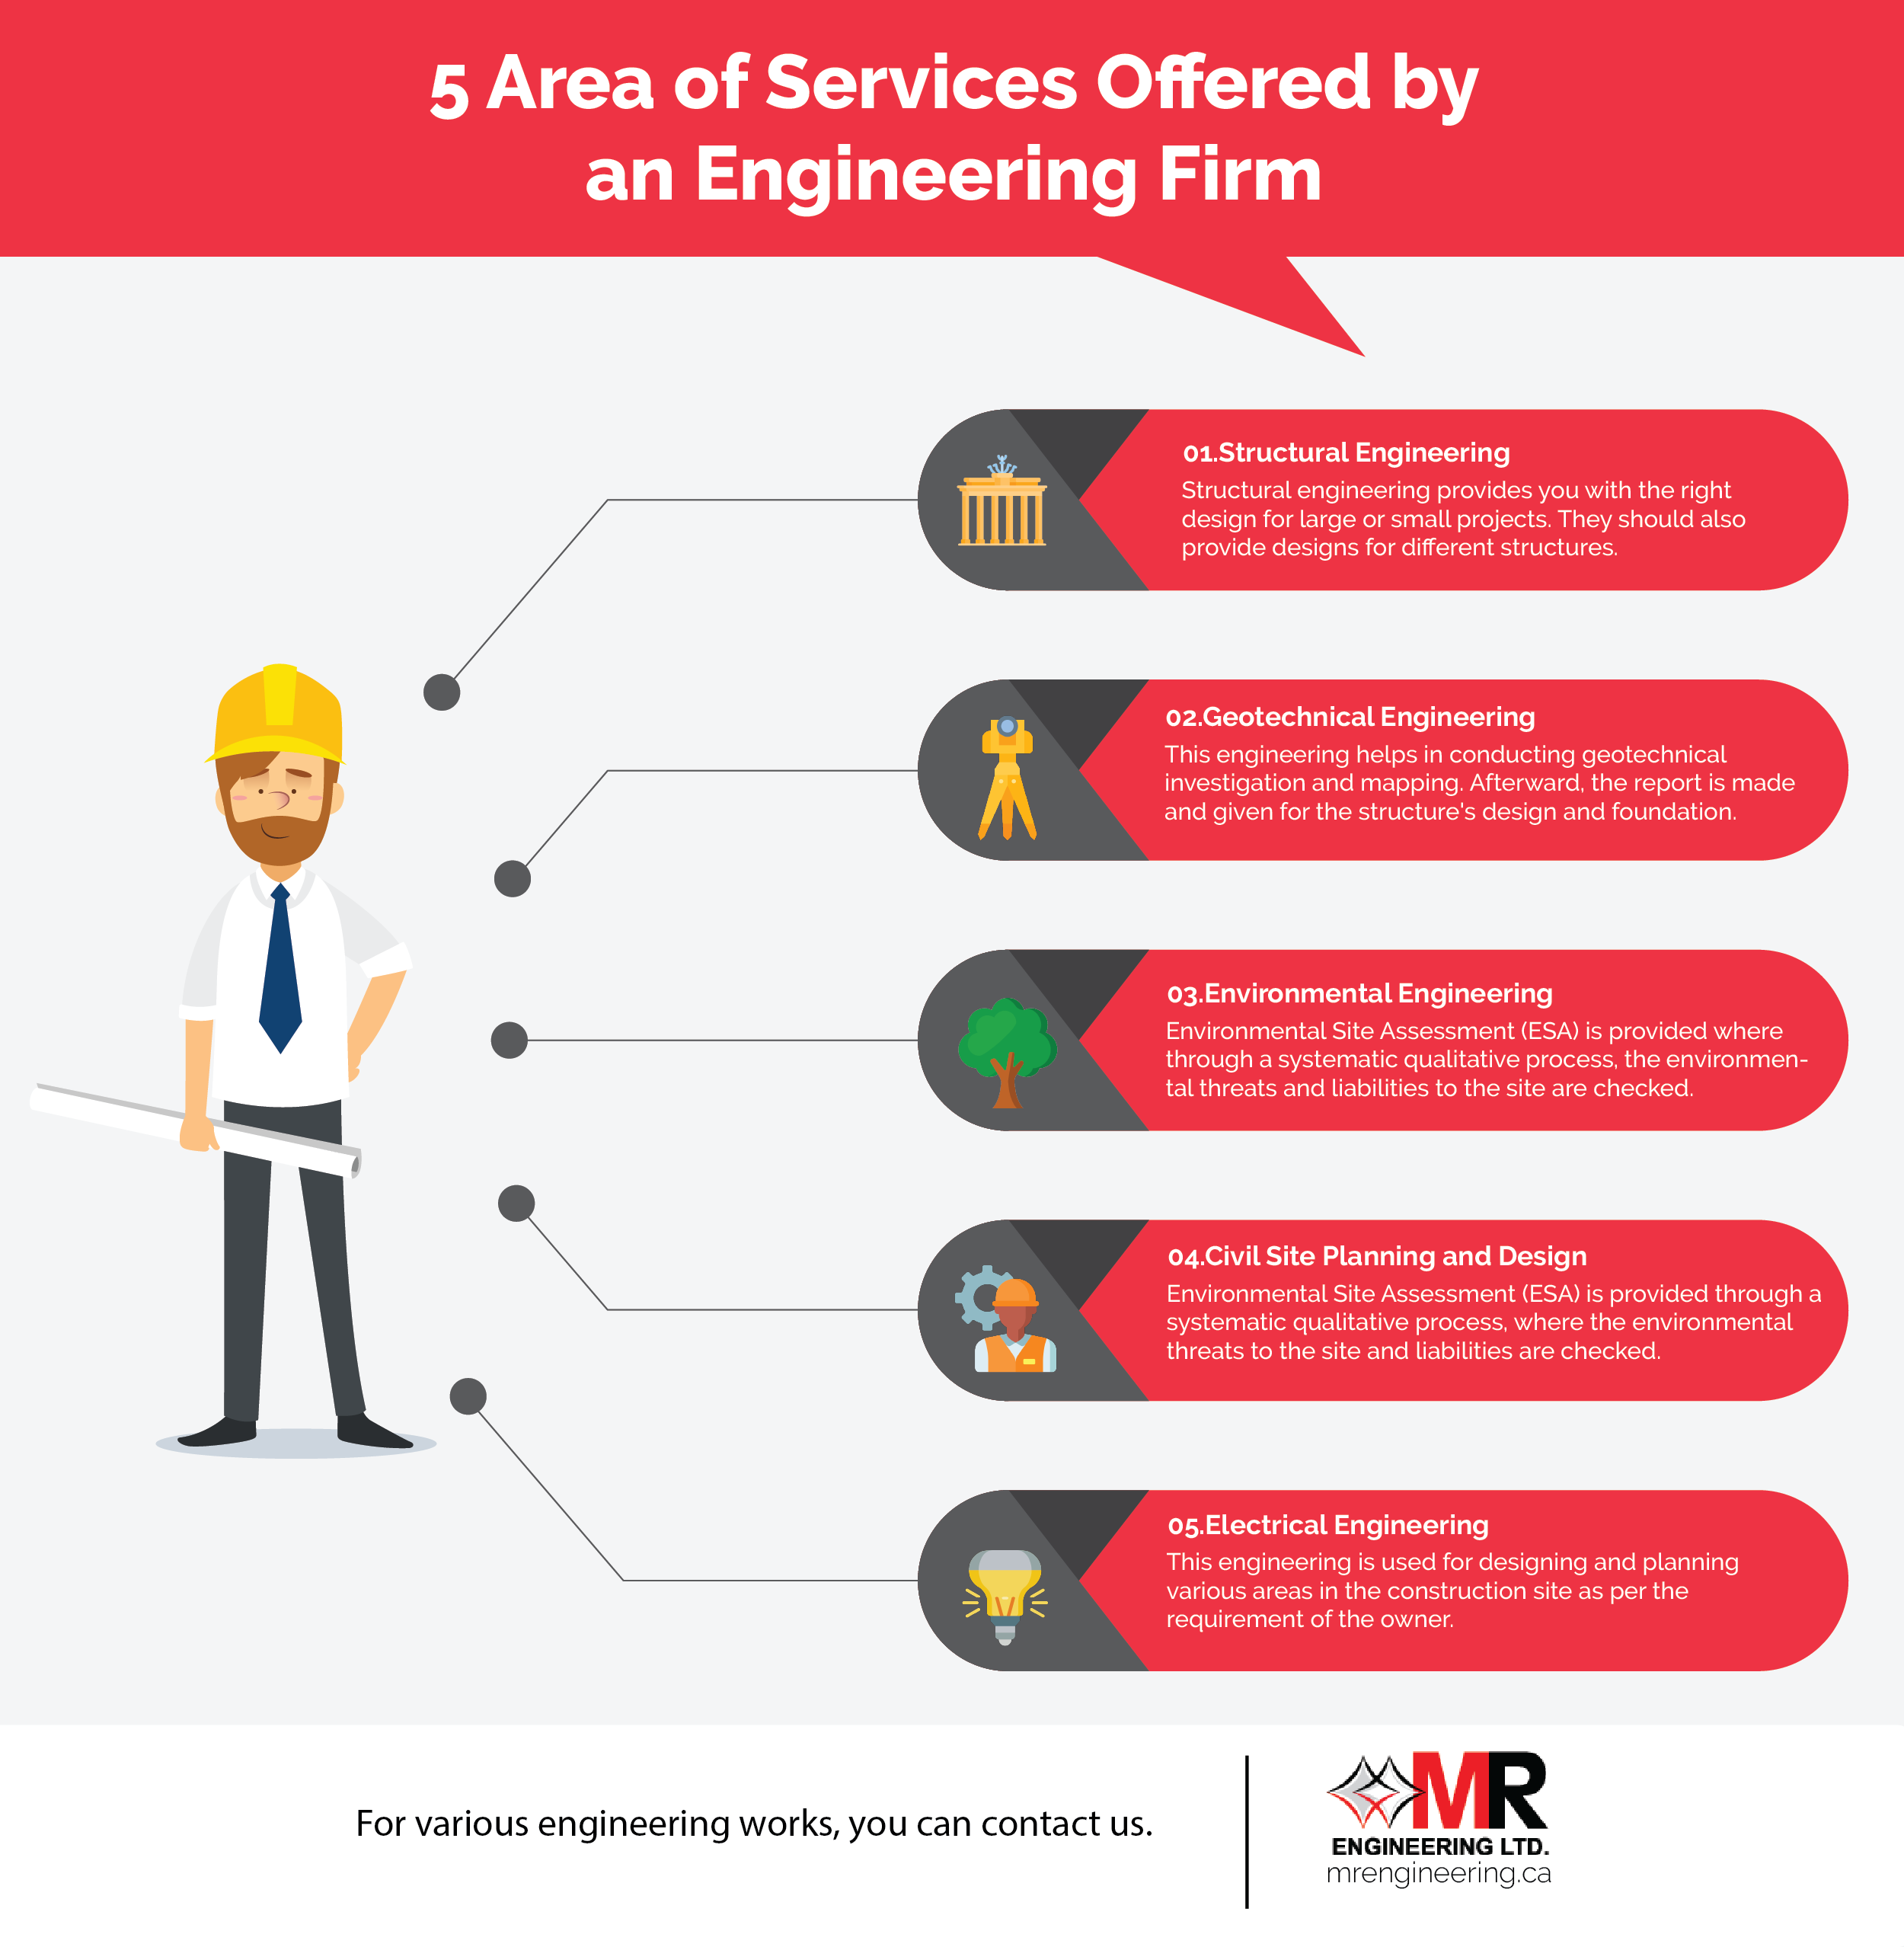 Services Offered by an Engineering Firm